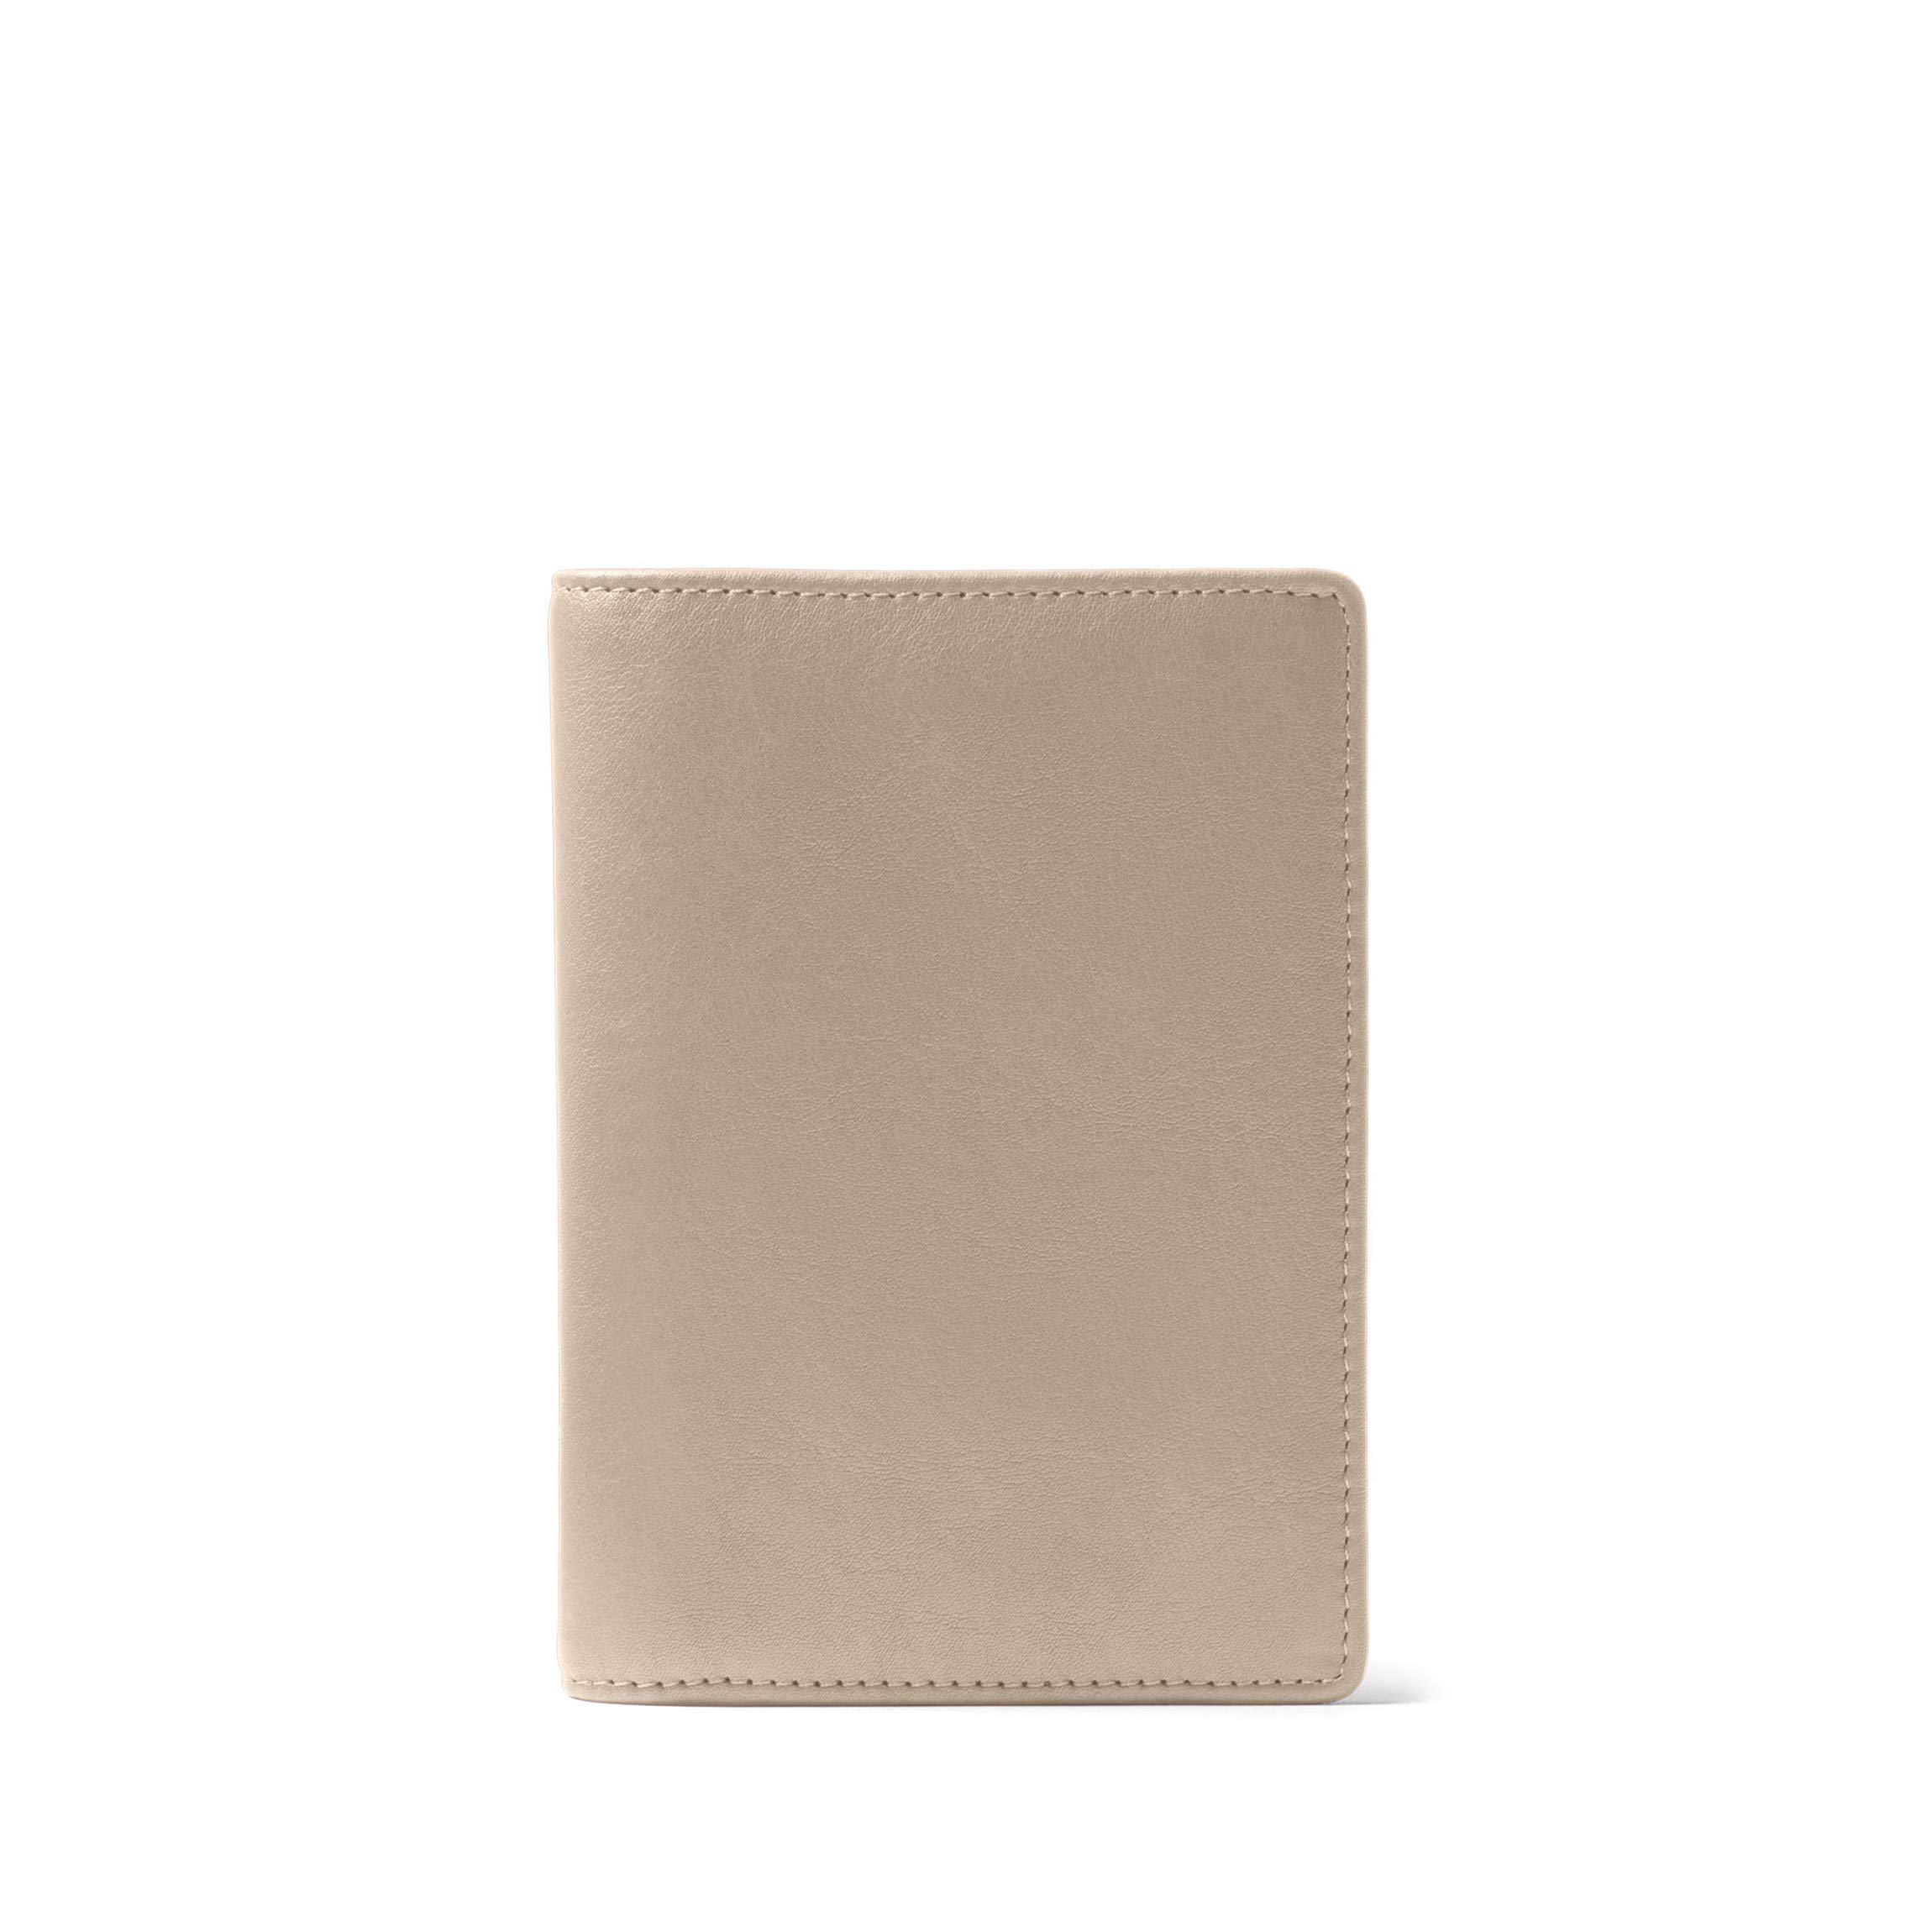 Deluxe Passport Cover - Full Grain Leather Leather - Ginger (gray)